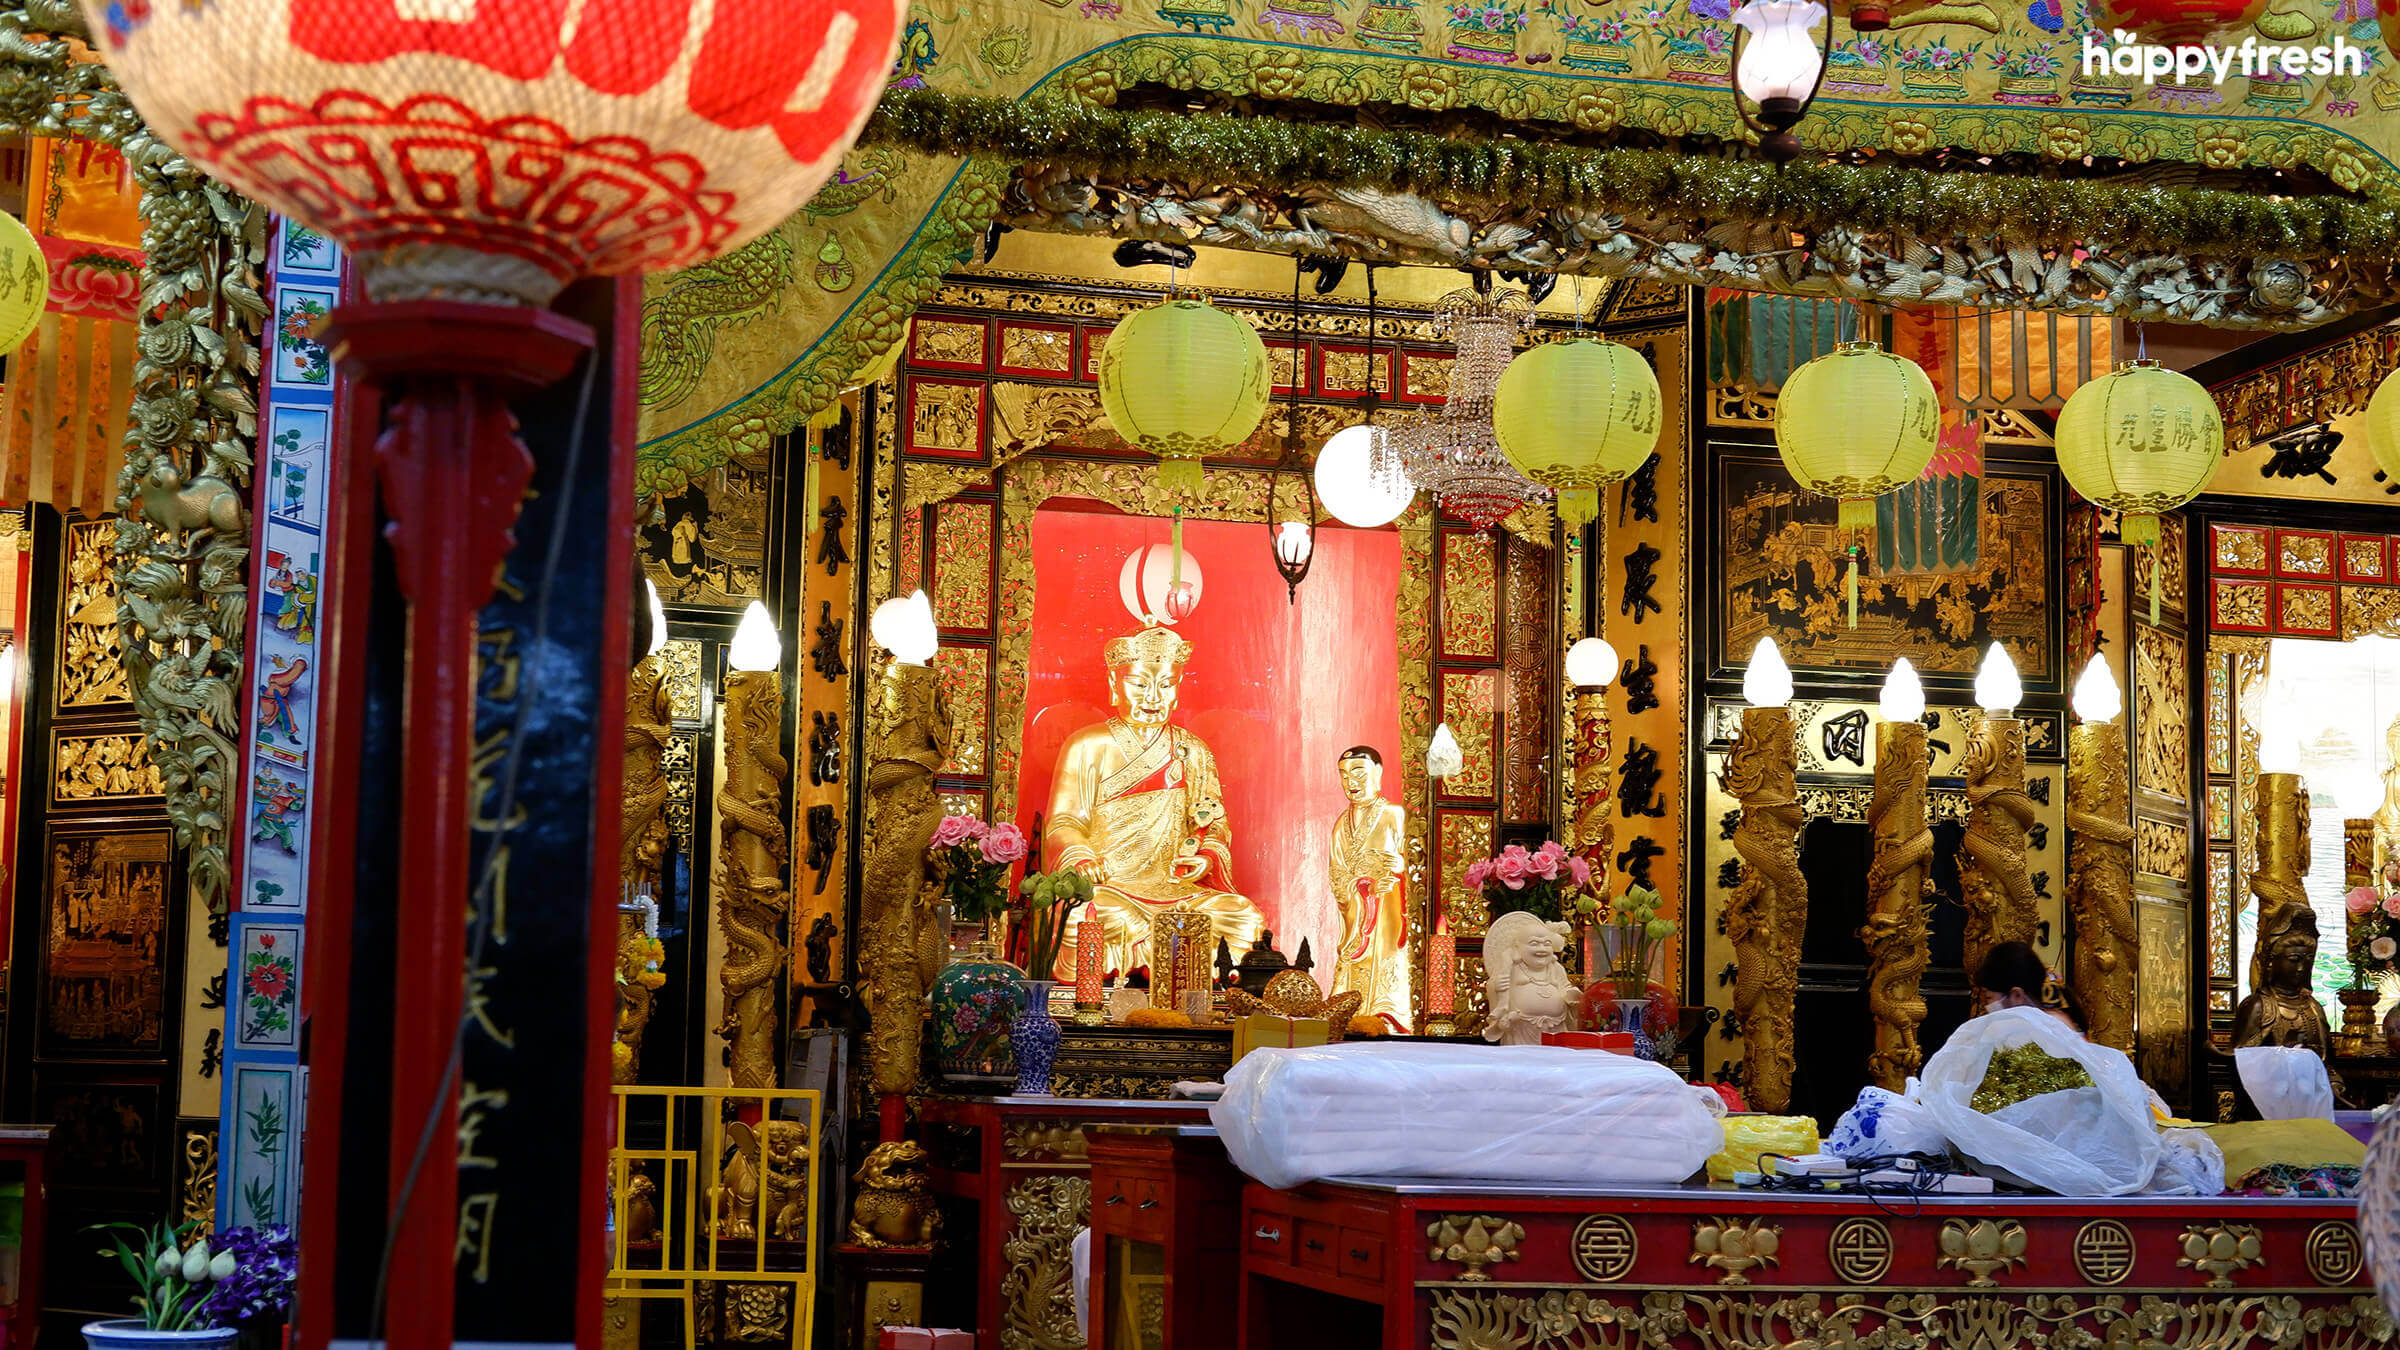 HappyFresh_Visit_6_Chinese_Shrines_In_Chinatown_Tai_Hong_Kong_Shrine